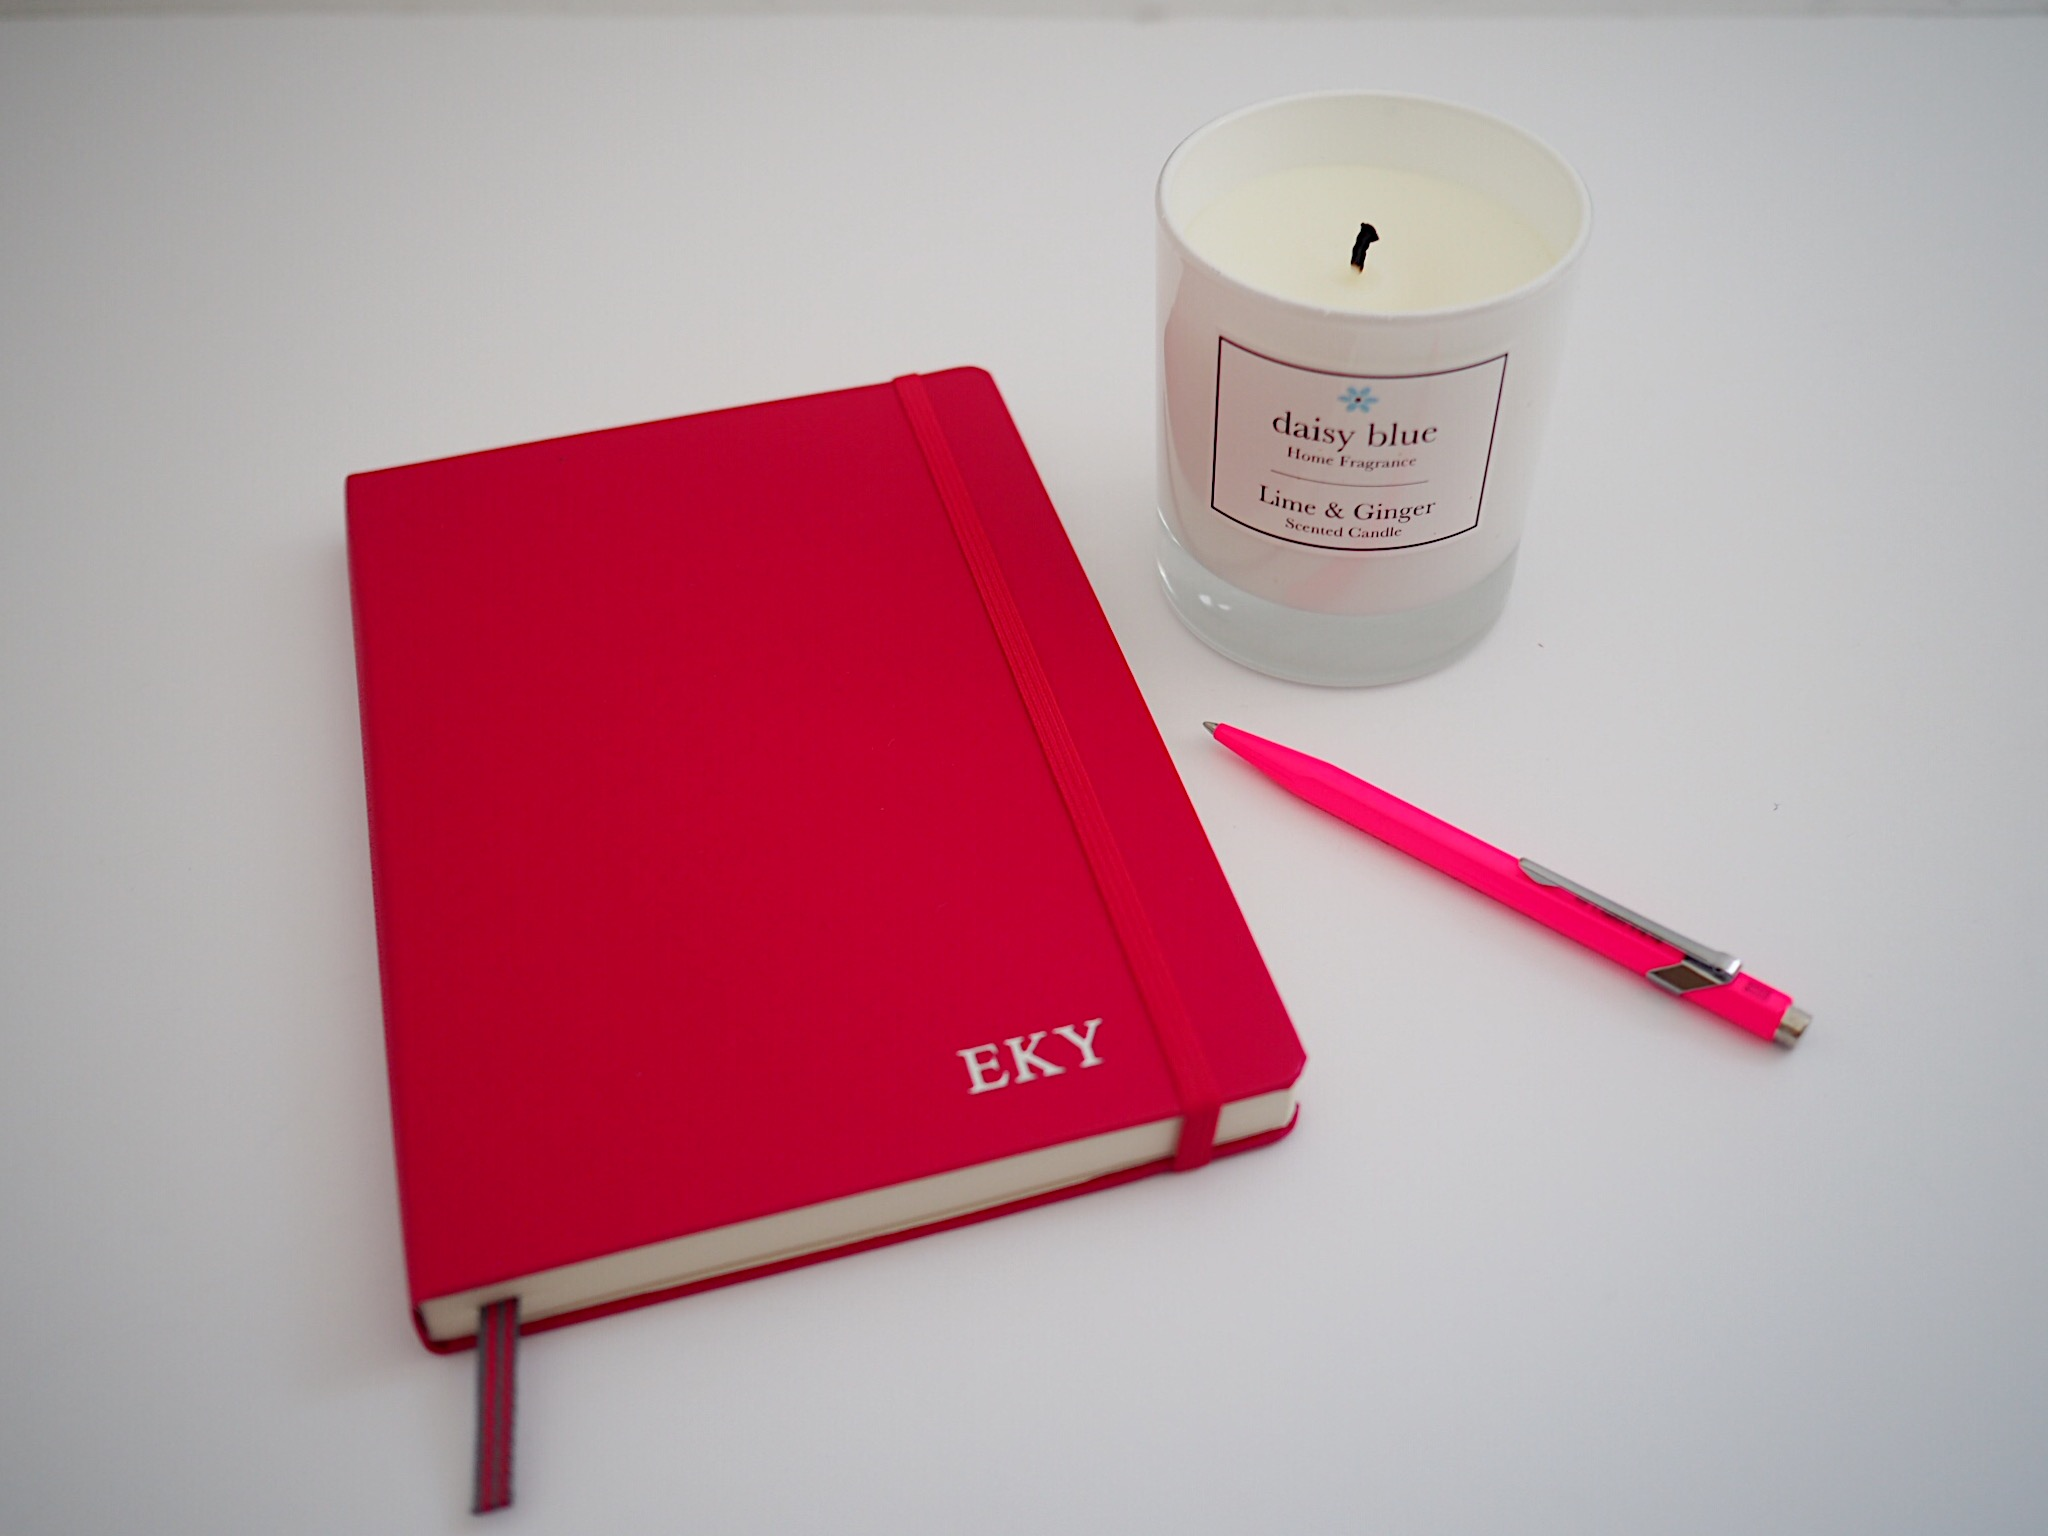 what-lizzy-loves-ginger-candle-pen-heaven-notebook